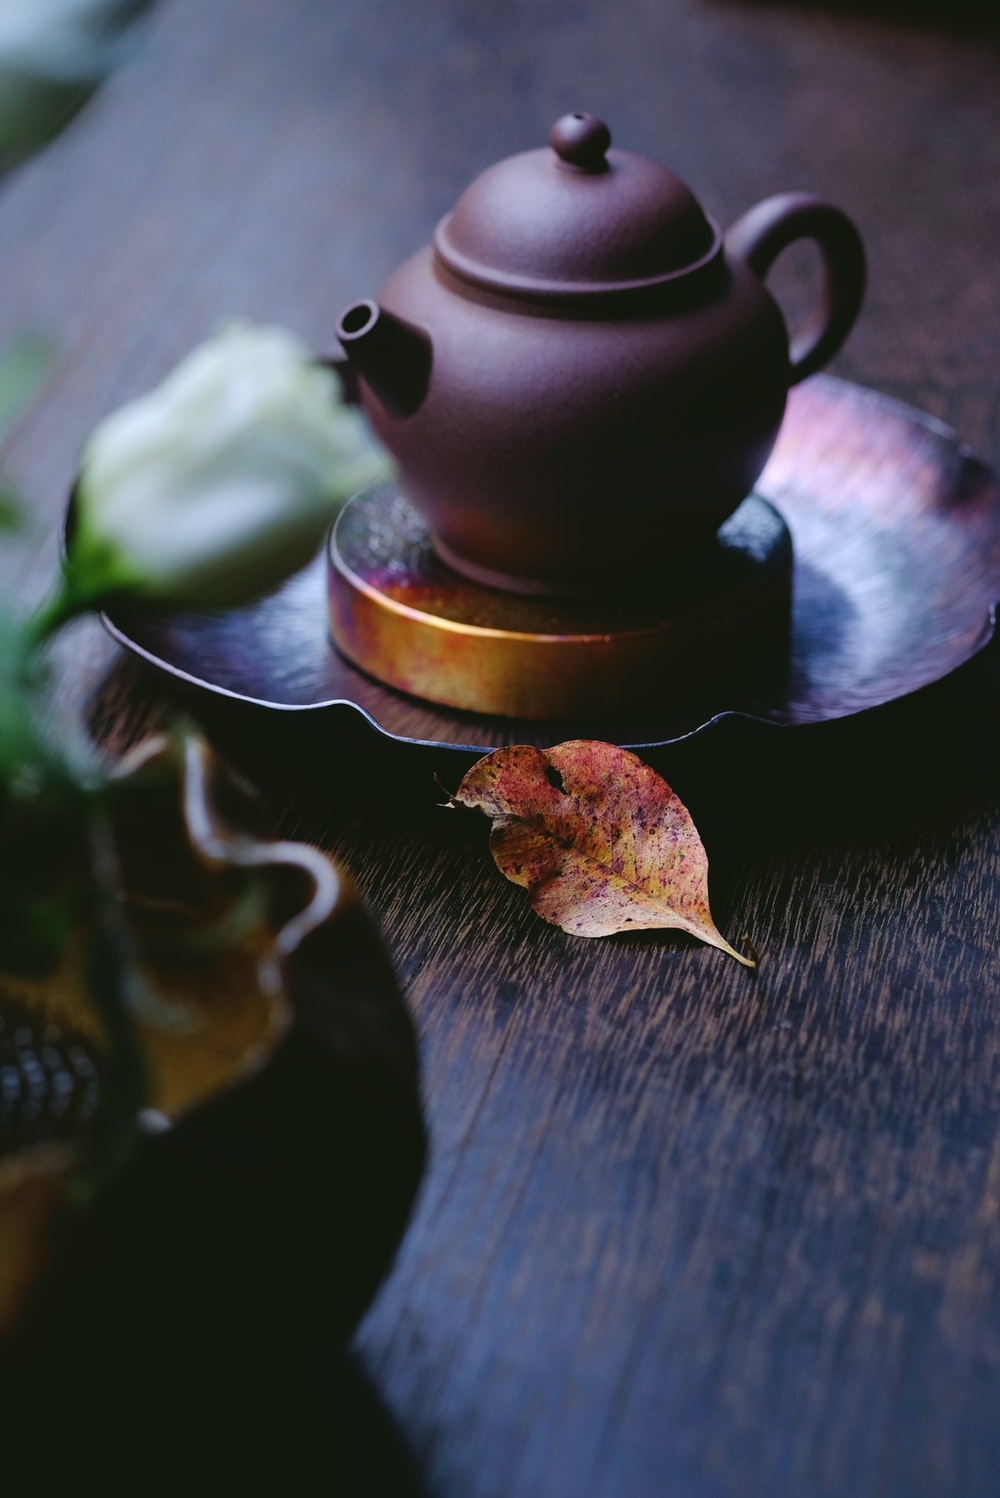 brown kettle on saucer